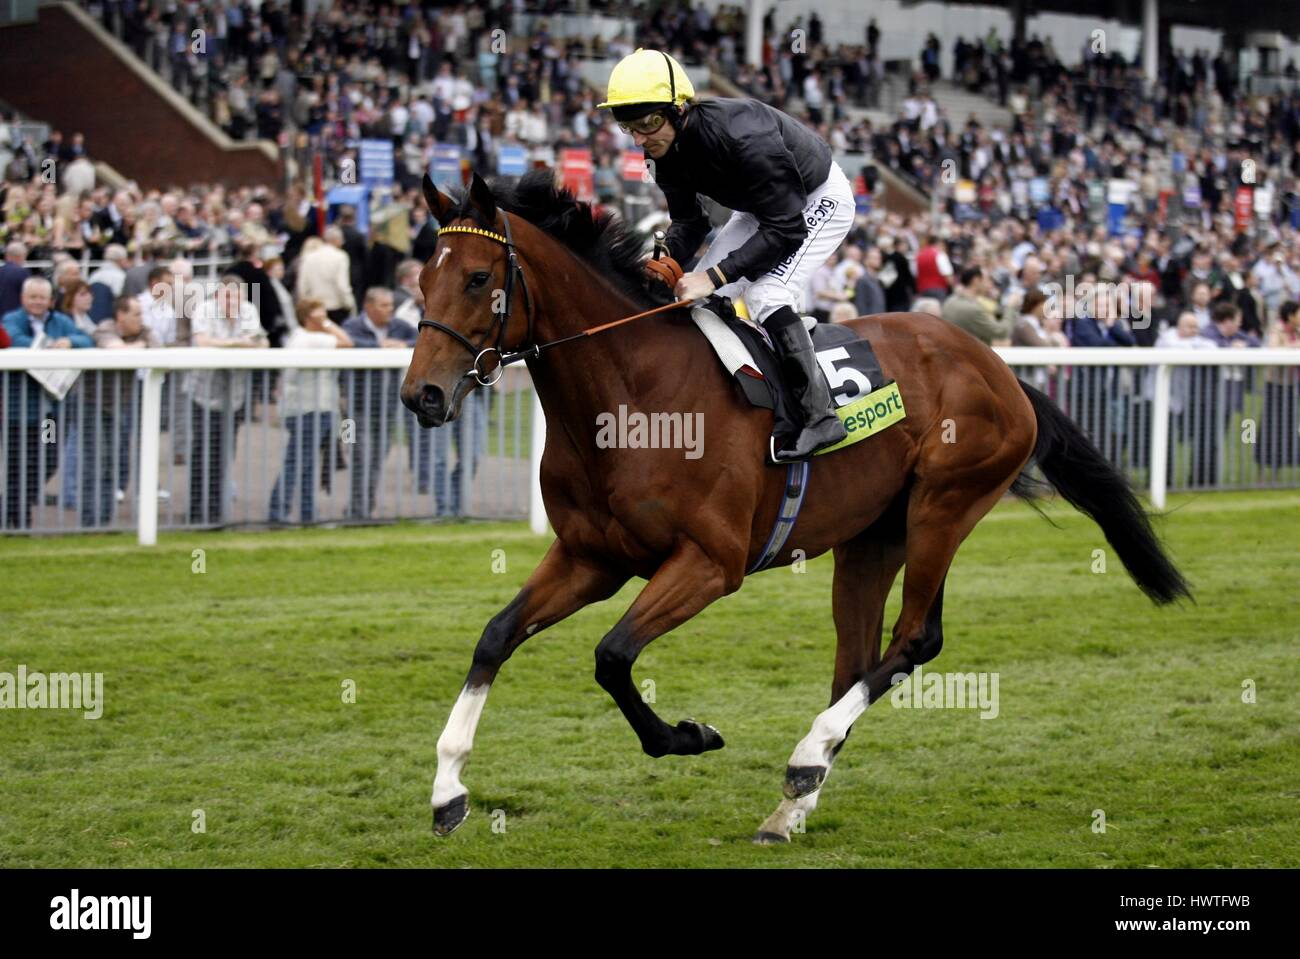 PROPONENT RIDDEN BY STEVE DROWNE THE KNAVESMIRE YORK RACECORSE ENGLAND 17 May 2007 - Stock Image